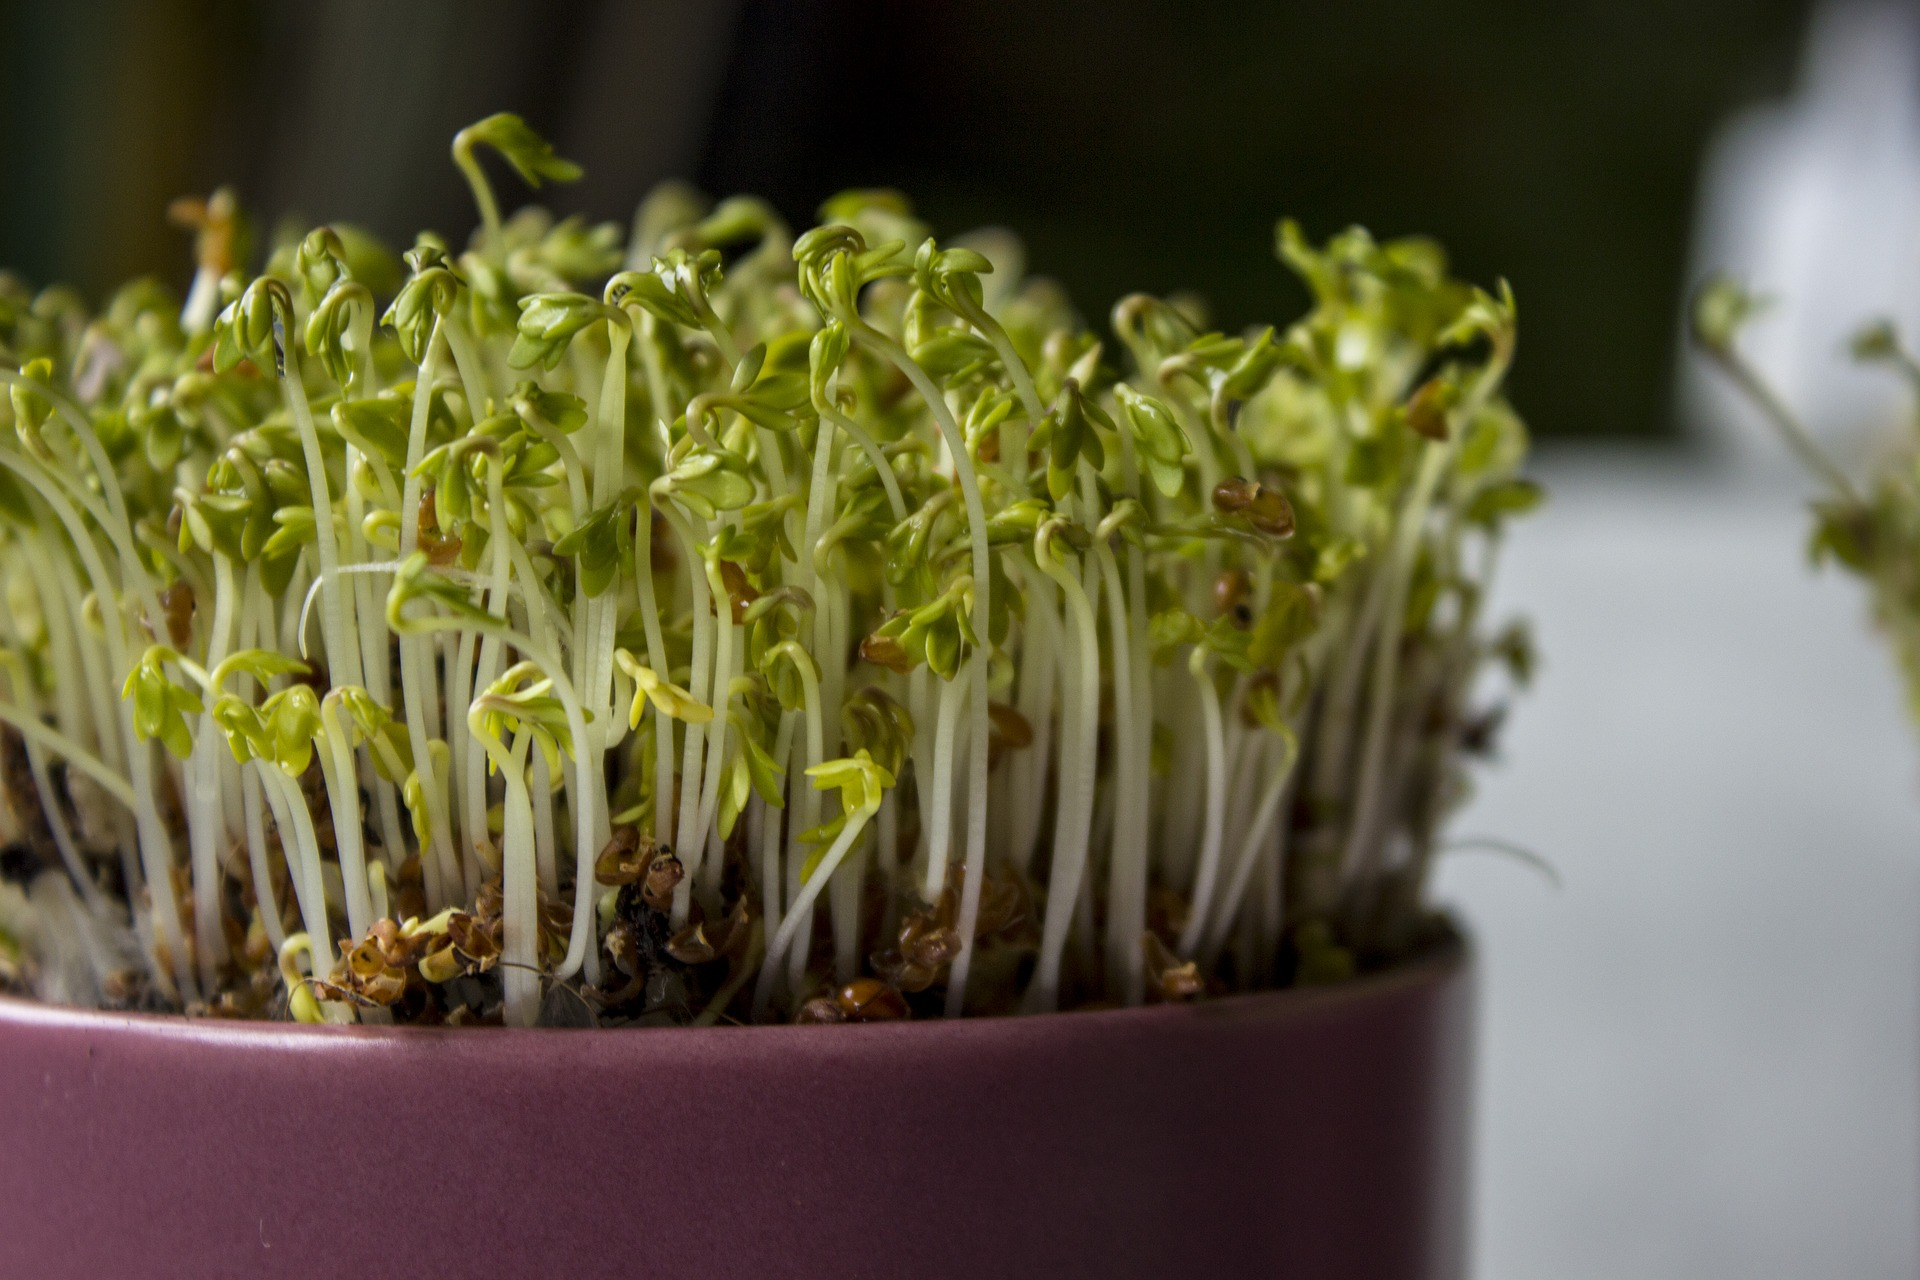 A Cress plant grown indoors in a container.